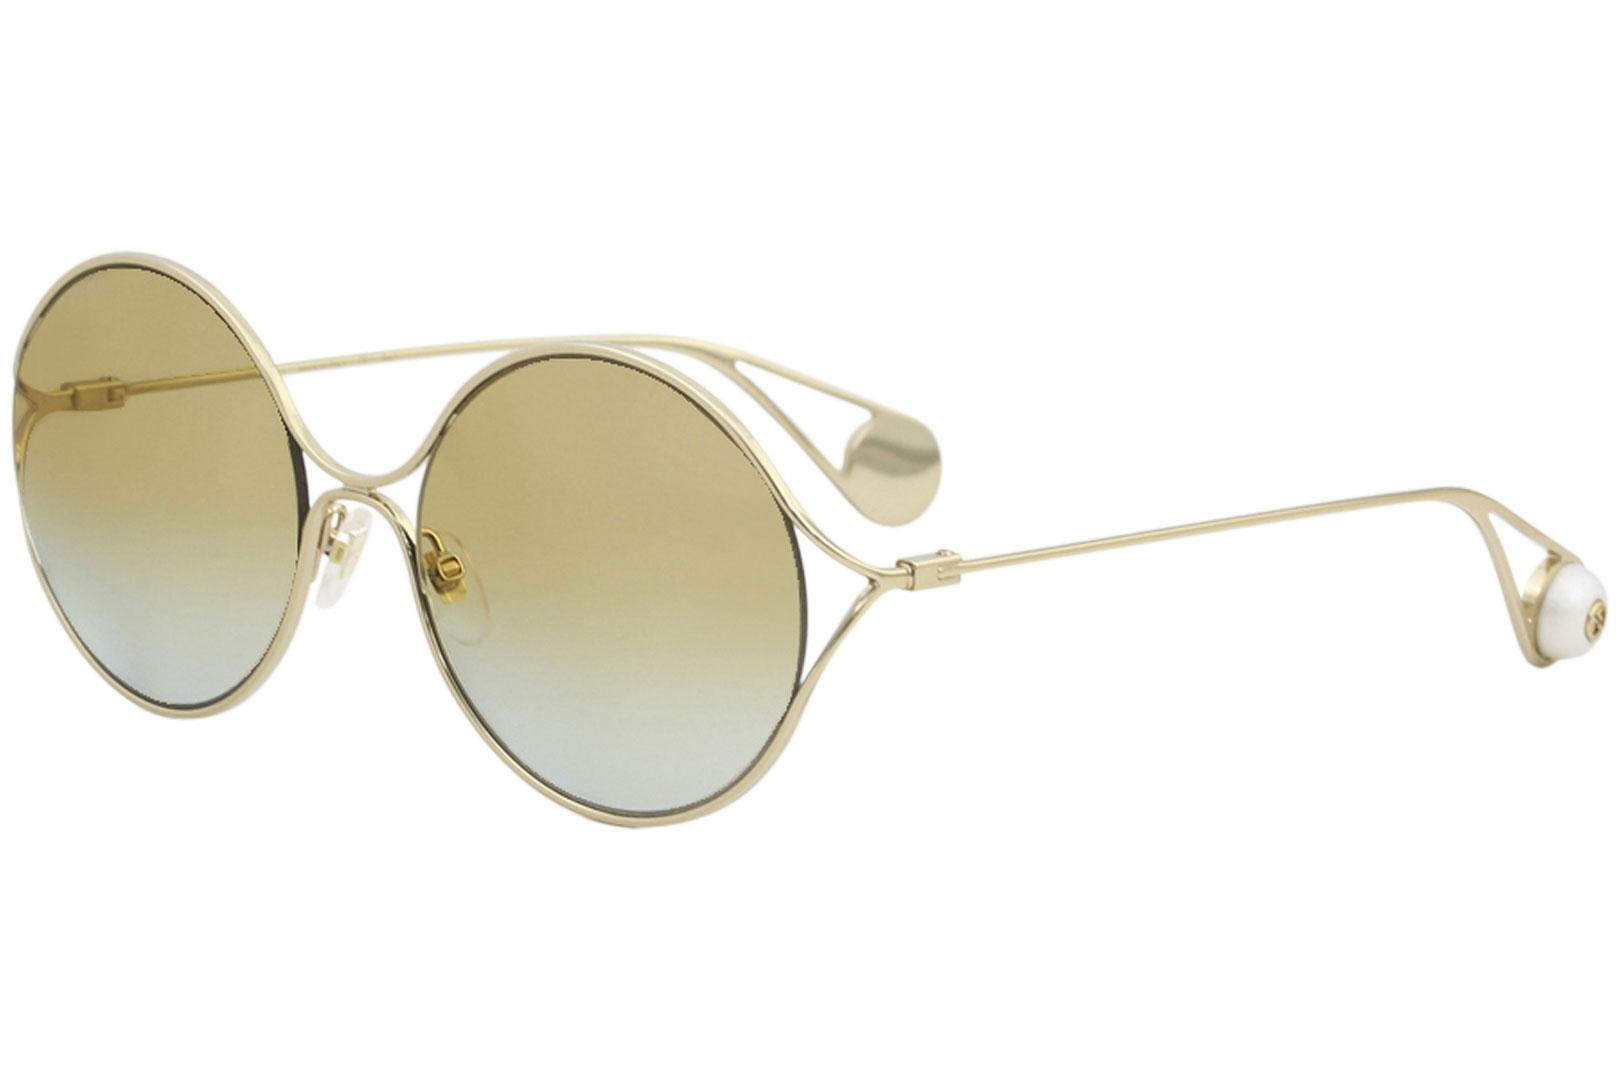 587a4c1b96 Gucci Women s GG0253S GG 0253 S 005 Gold Multicolor Round Sunglasses ...